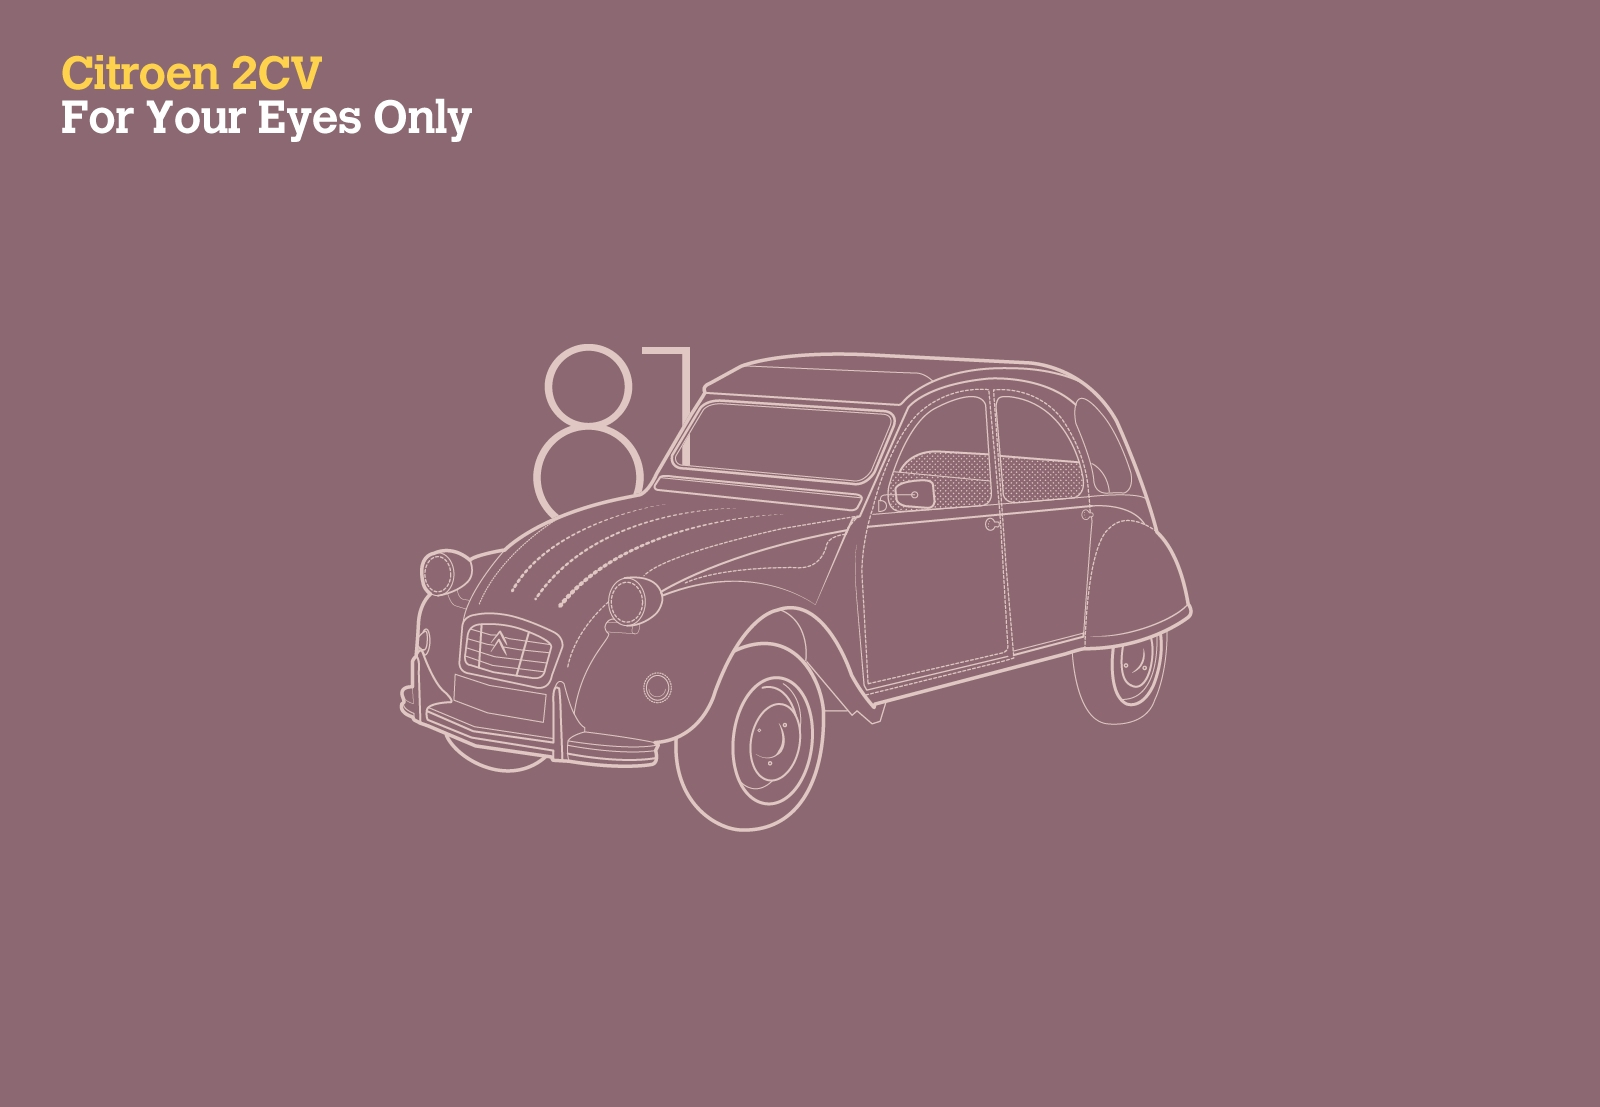 Citroen 2CV For Your Eyes Only